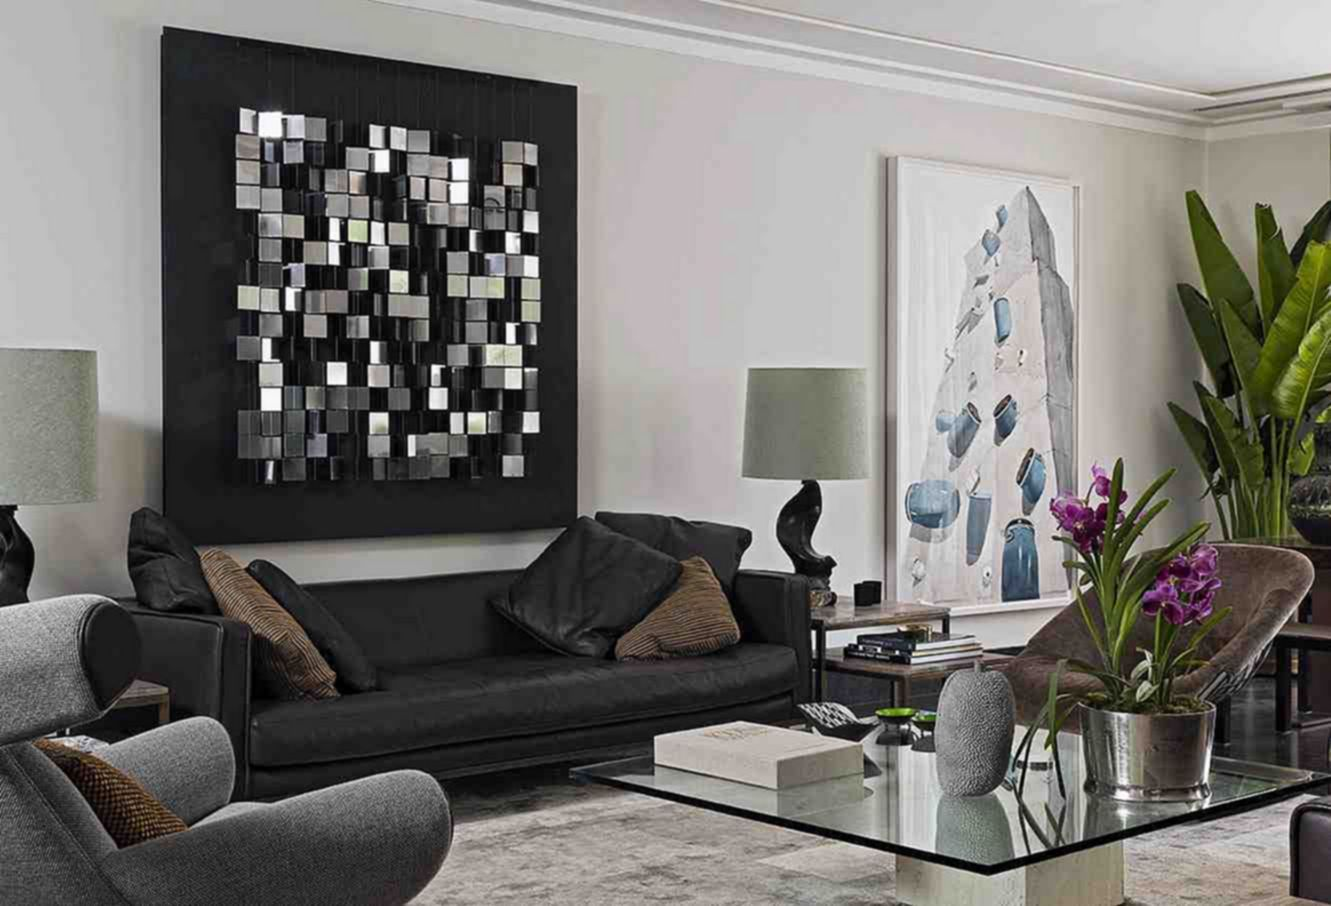 Incredible 20 Wall Decorating Ideas To Enhance Your Room In 2020 Modern Living Room Wall Wall Decor Living Room Simple Living Room Decor #simple #living #room #wall #decor #ideas